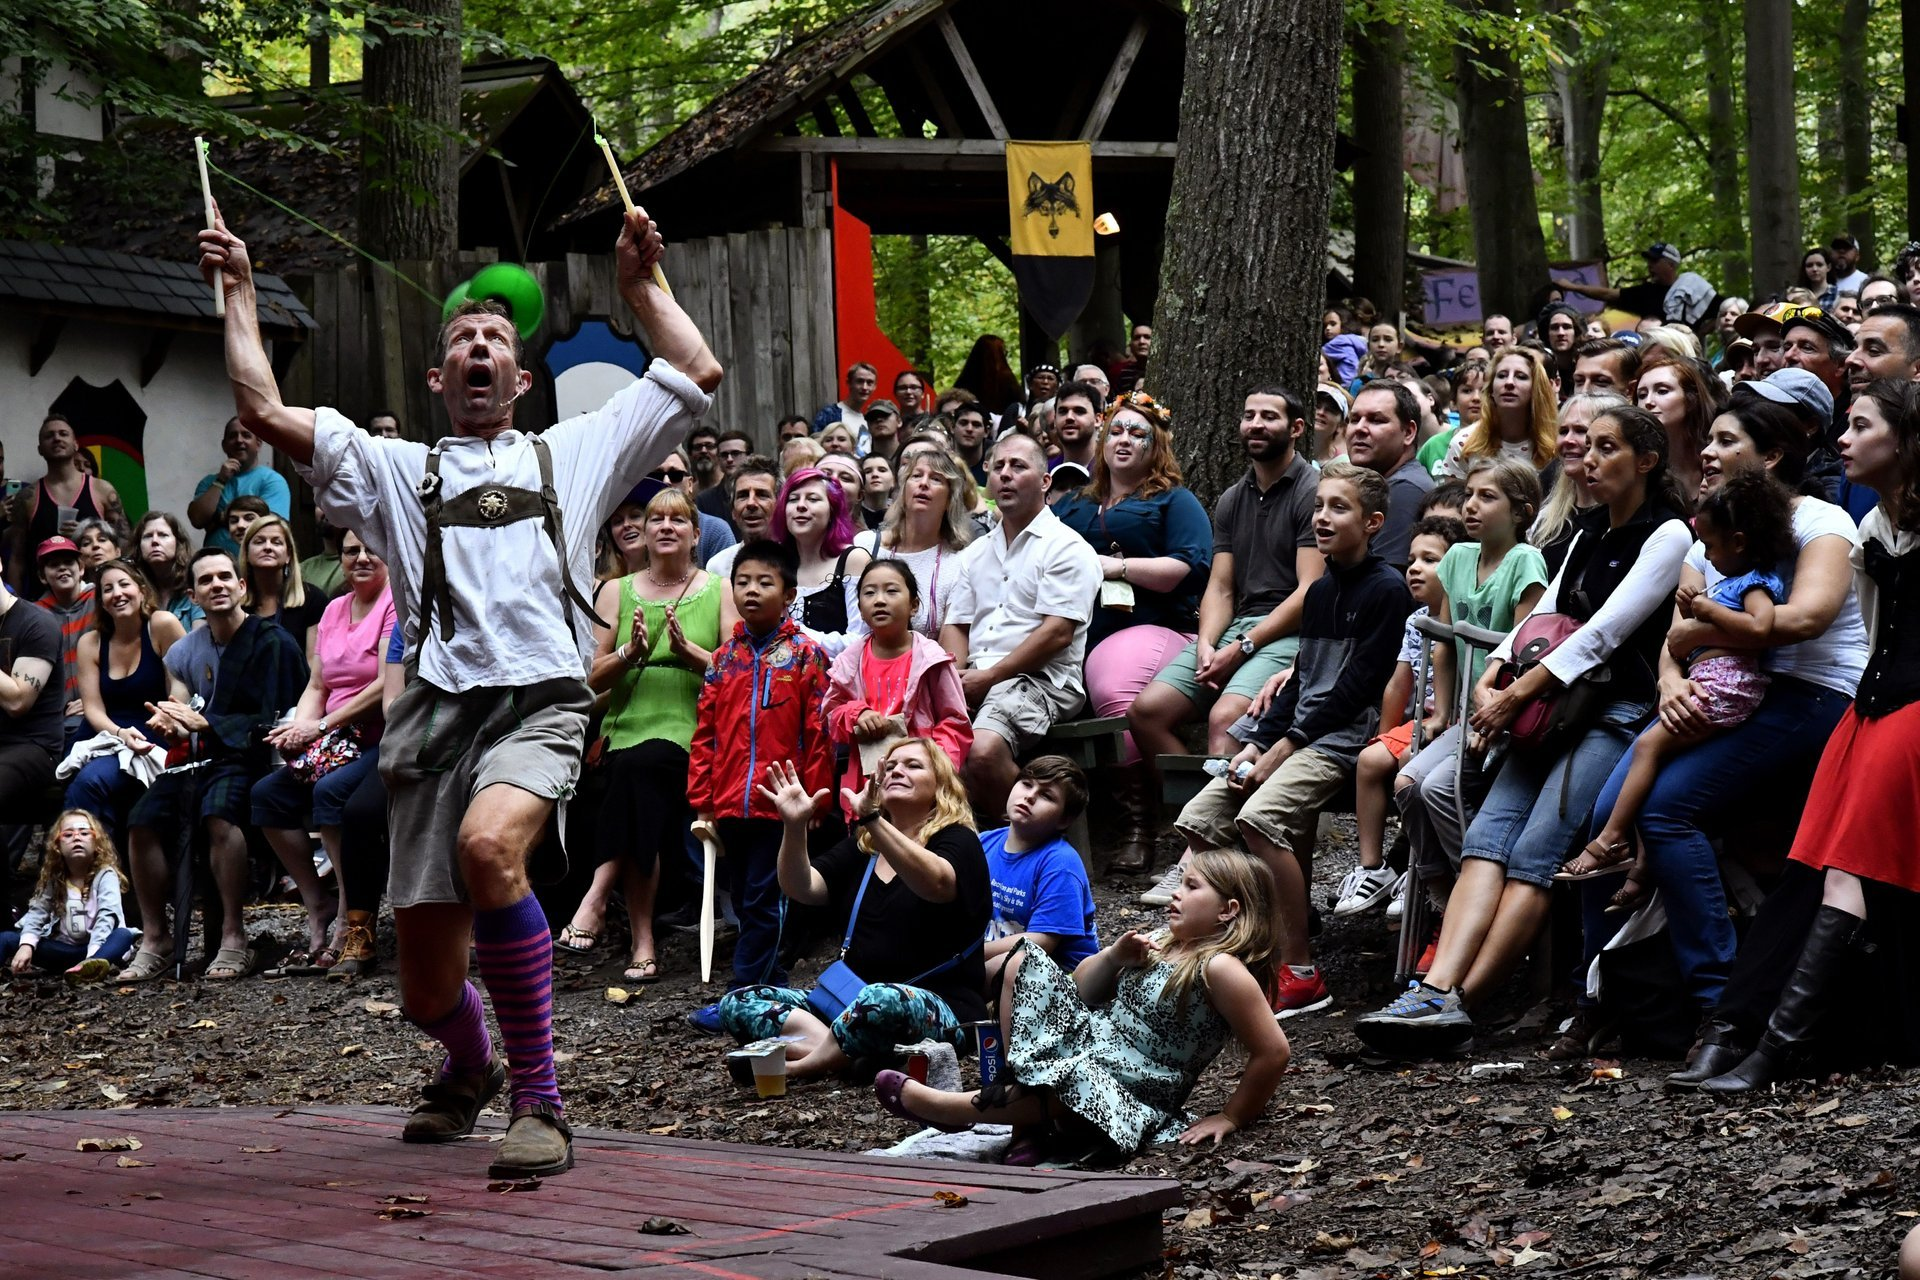 Best time to see Maryland Renaissance Festival in Maryland 2020